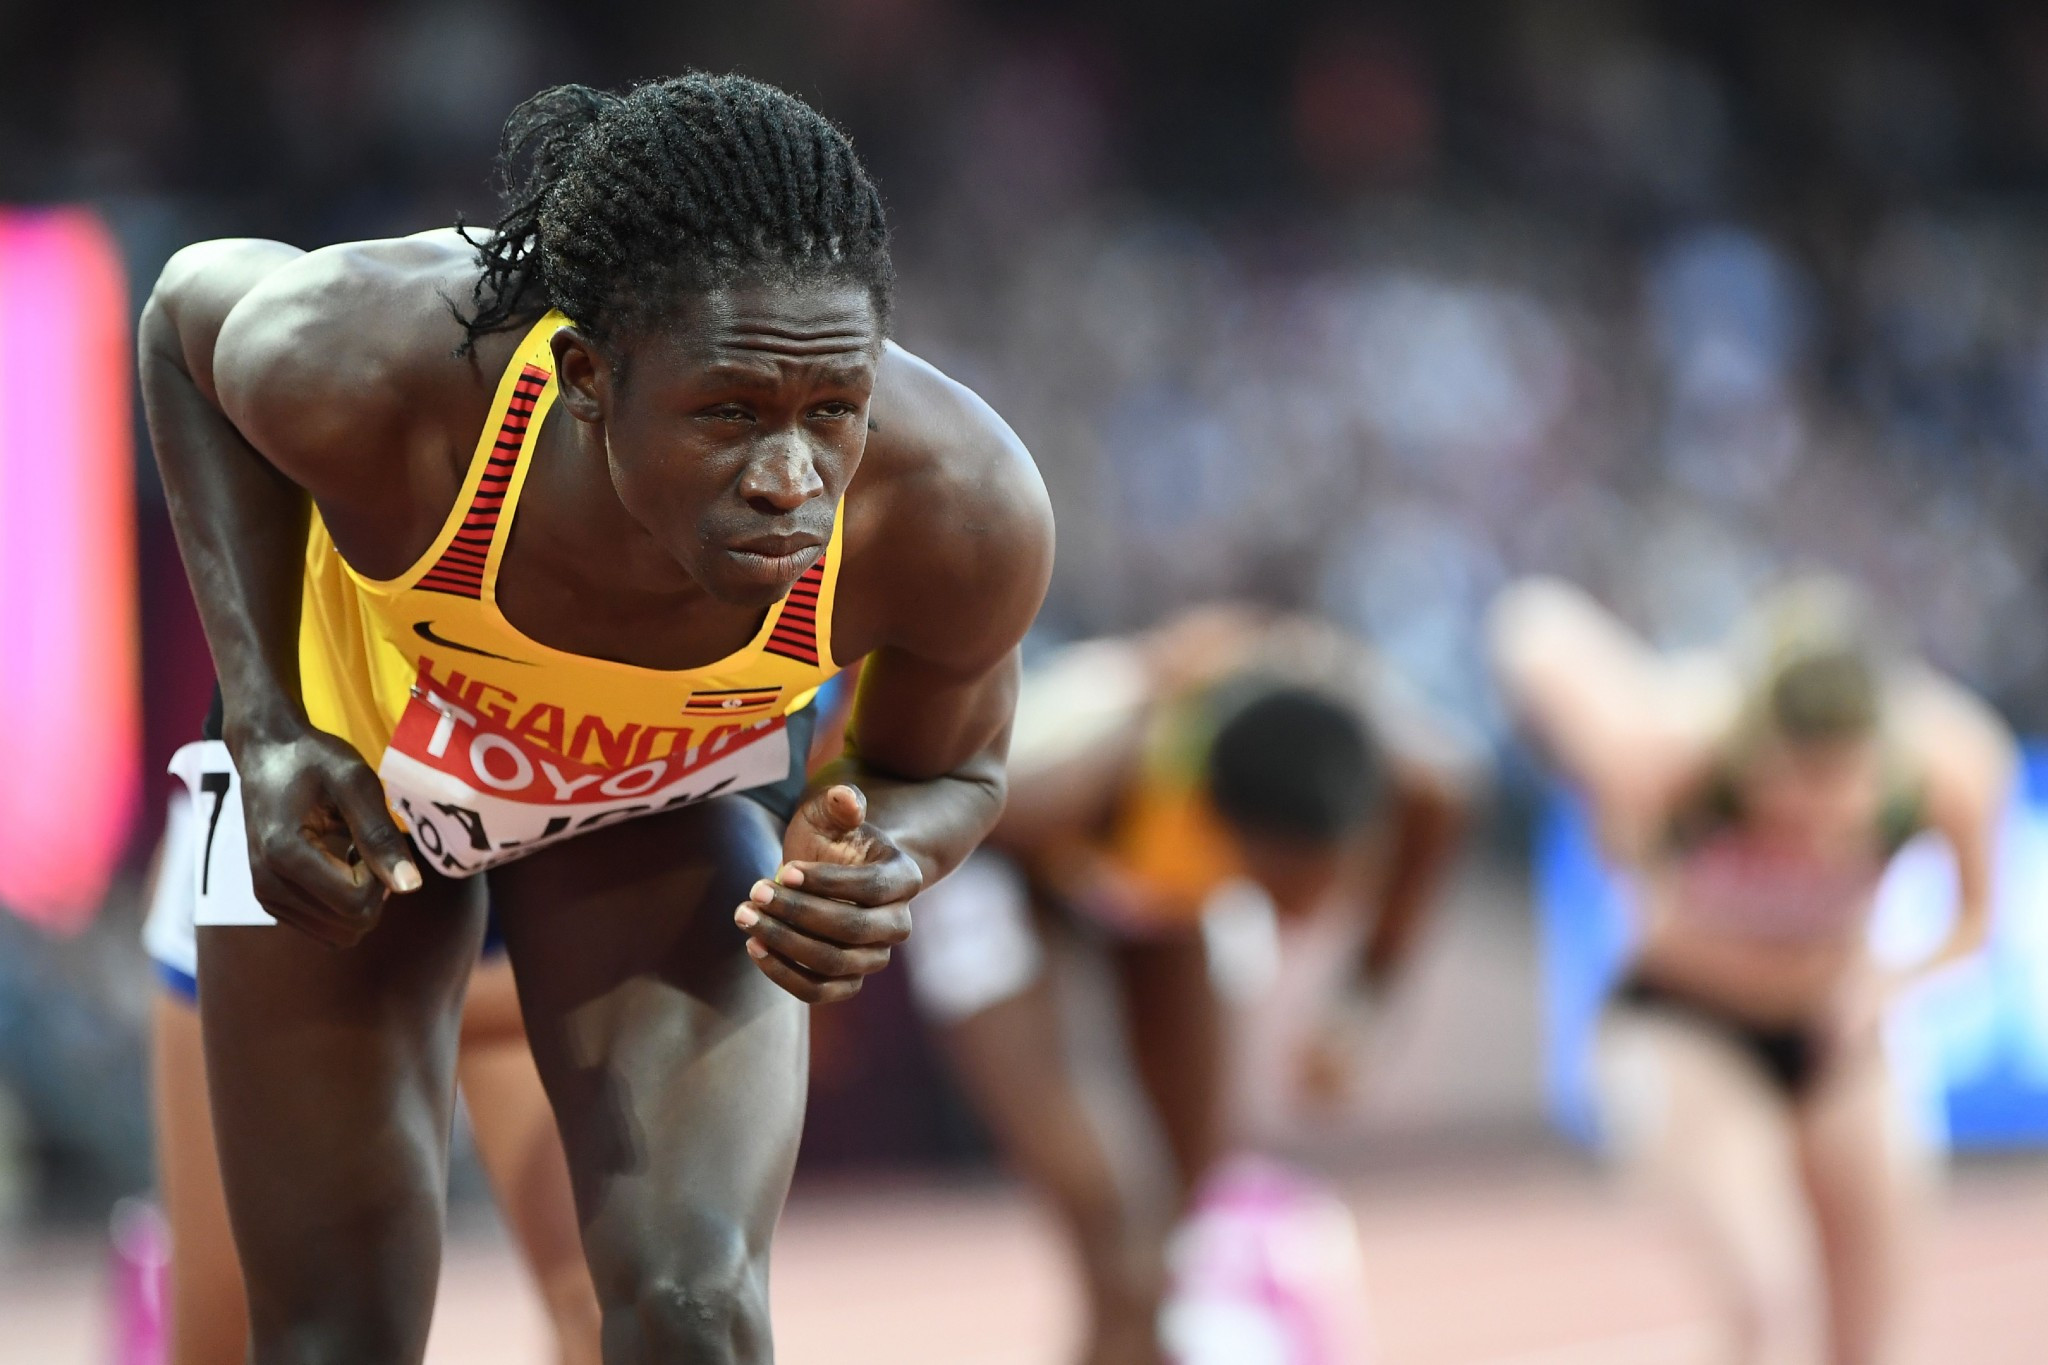 Dorcus Ajok will be hoping to retain her 1,500m title at Taipei 2017 ©Getty Images